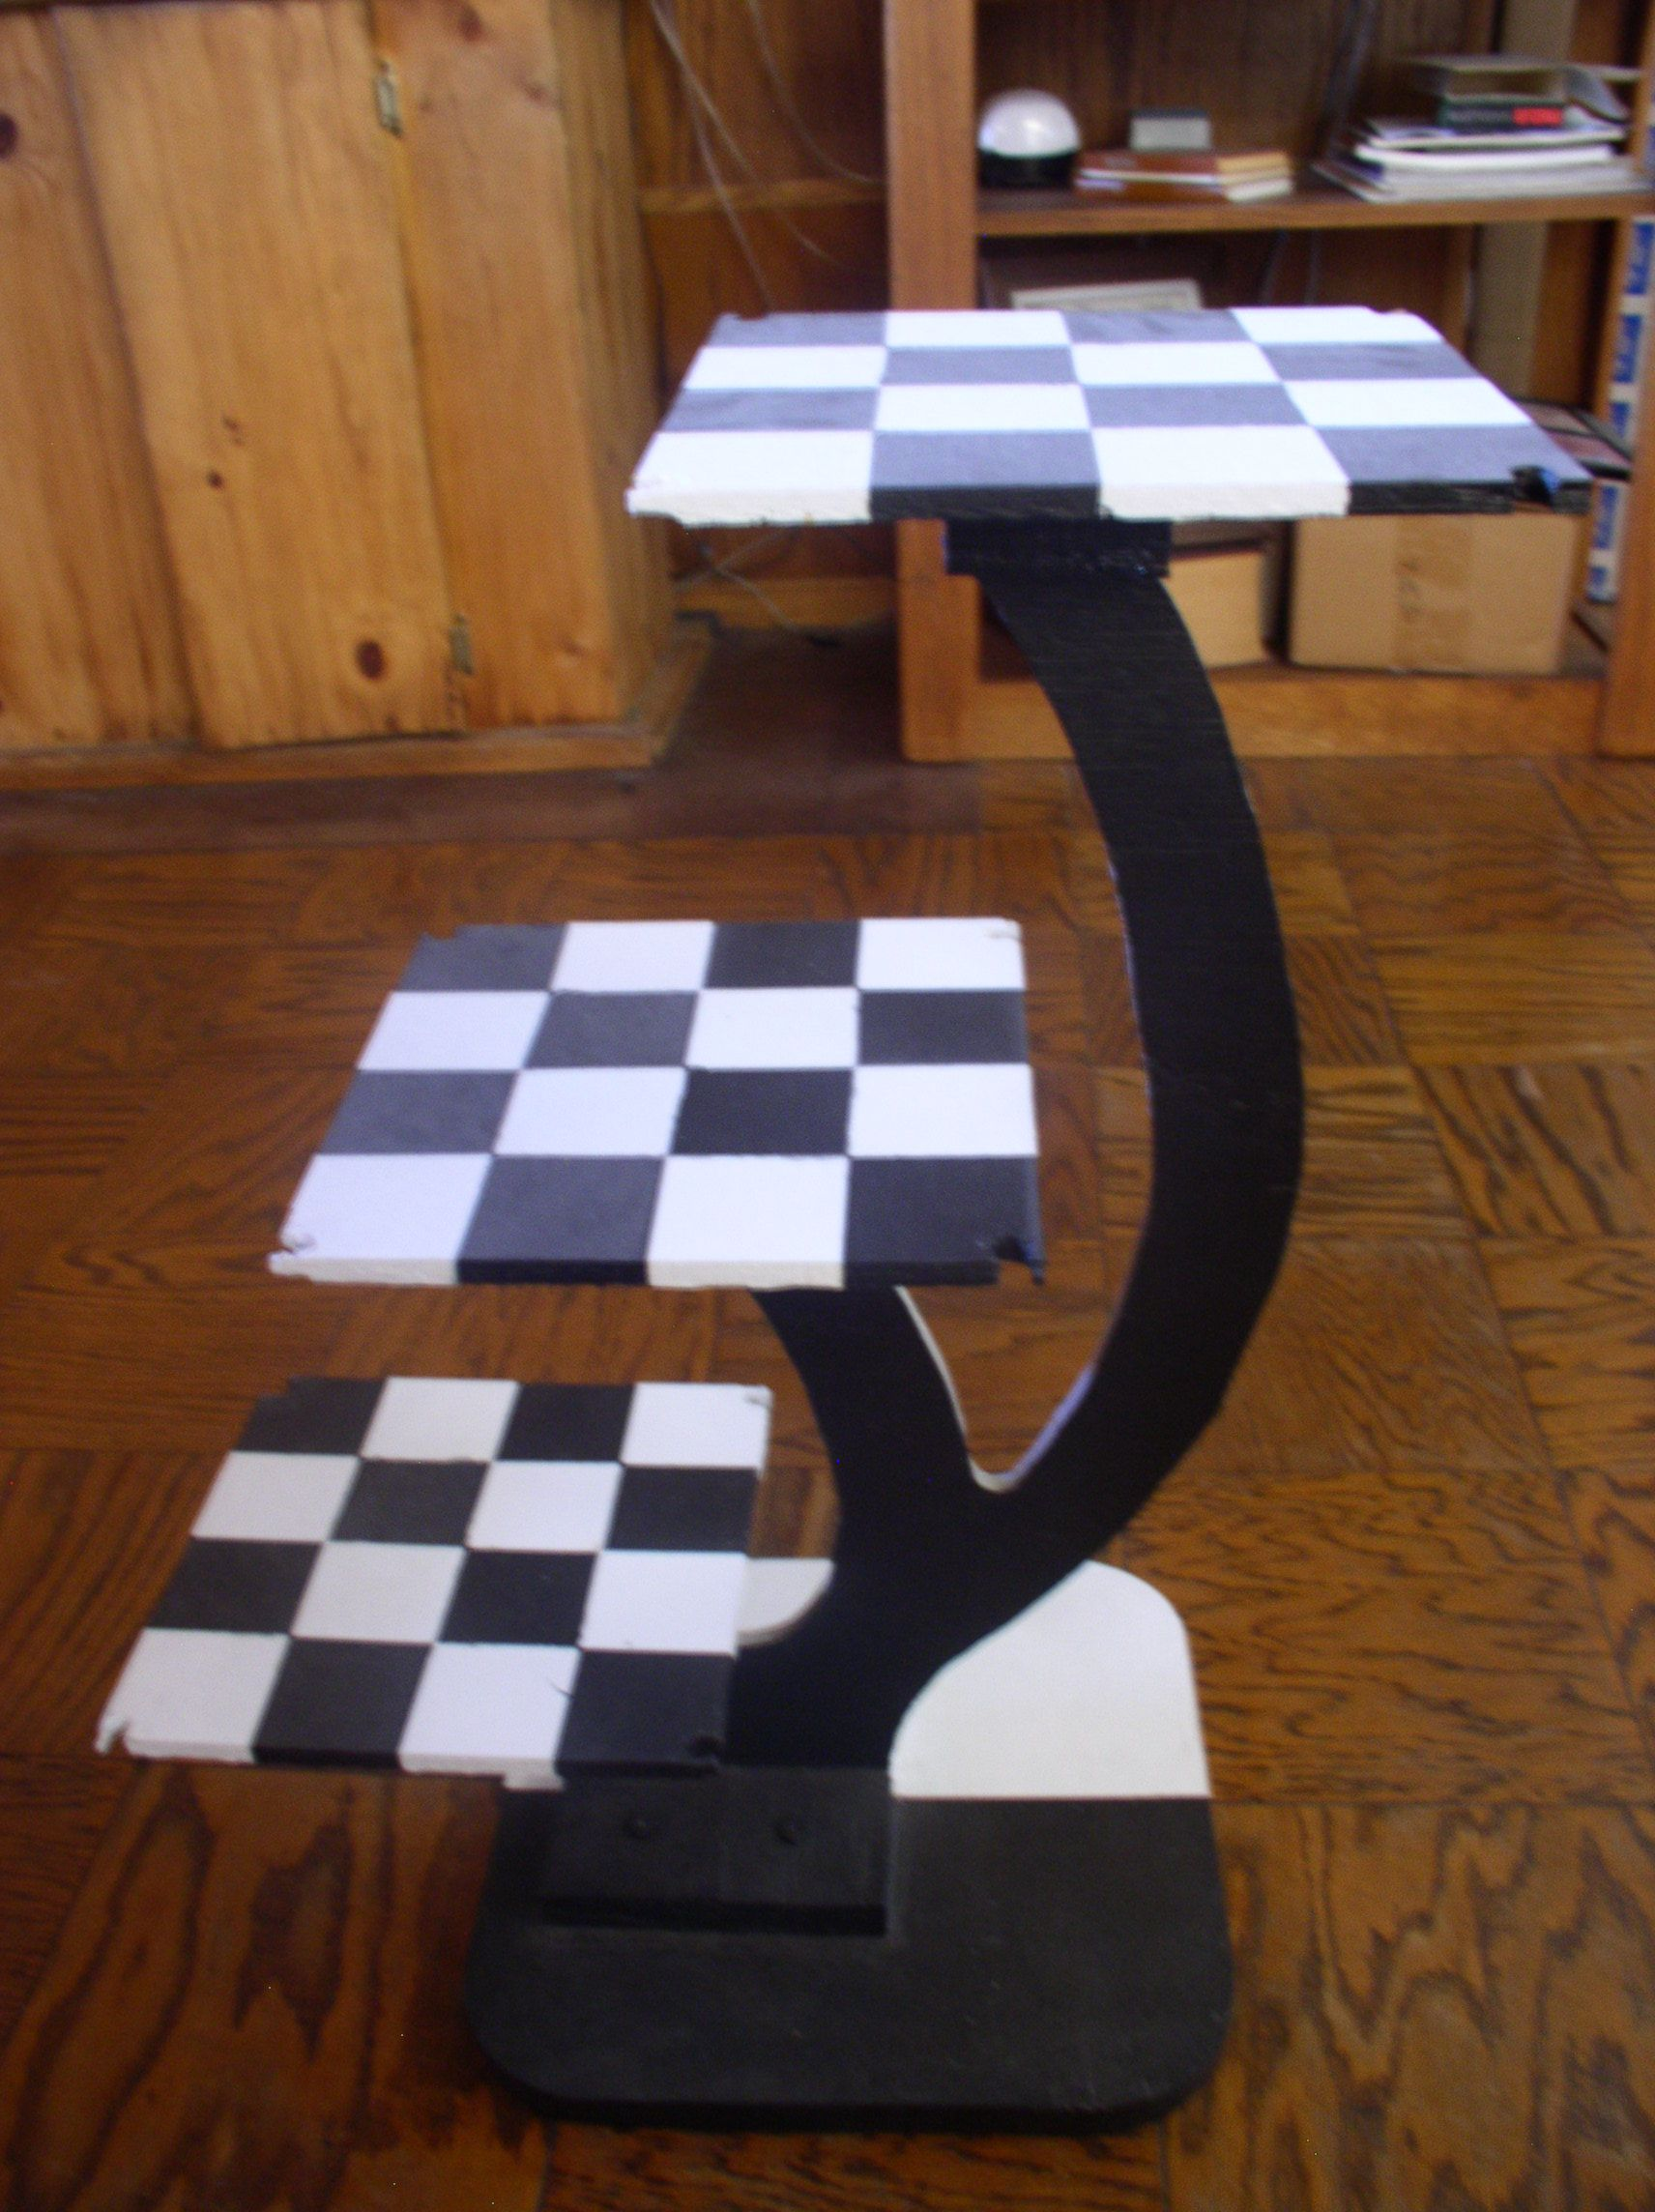 My 3d Room Design: My 3D Chess Board I Designed And Built (from Star Trek